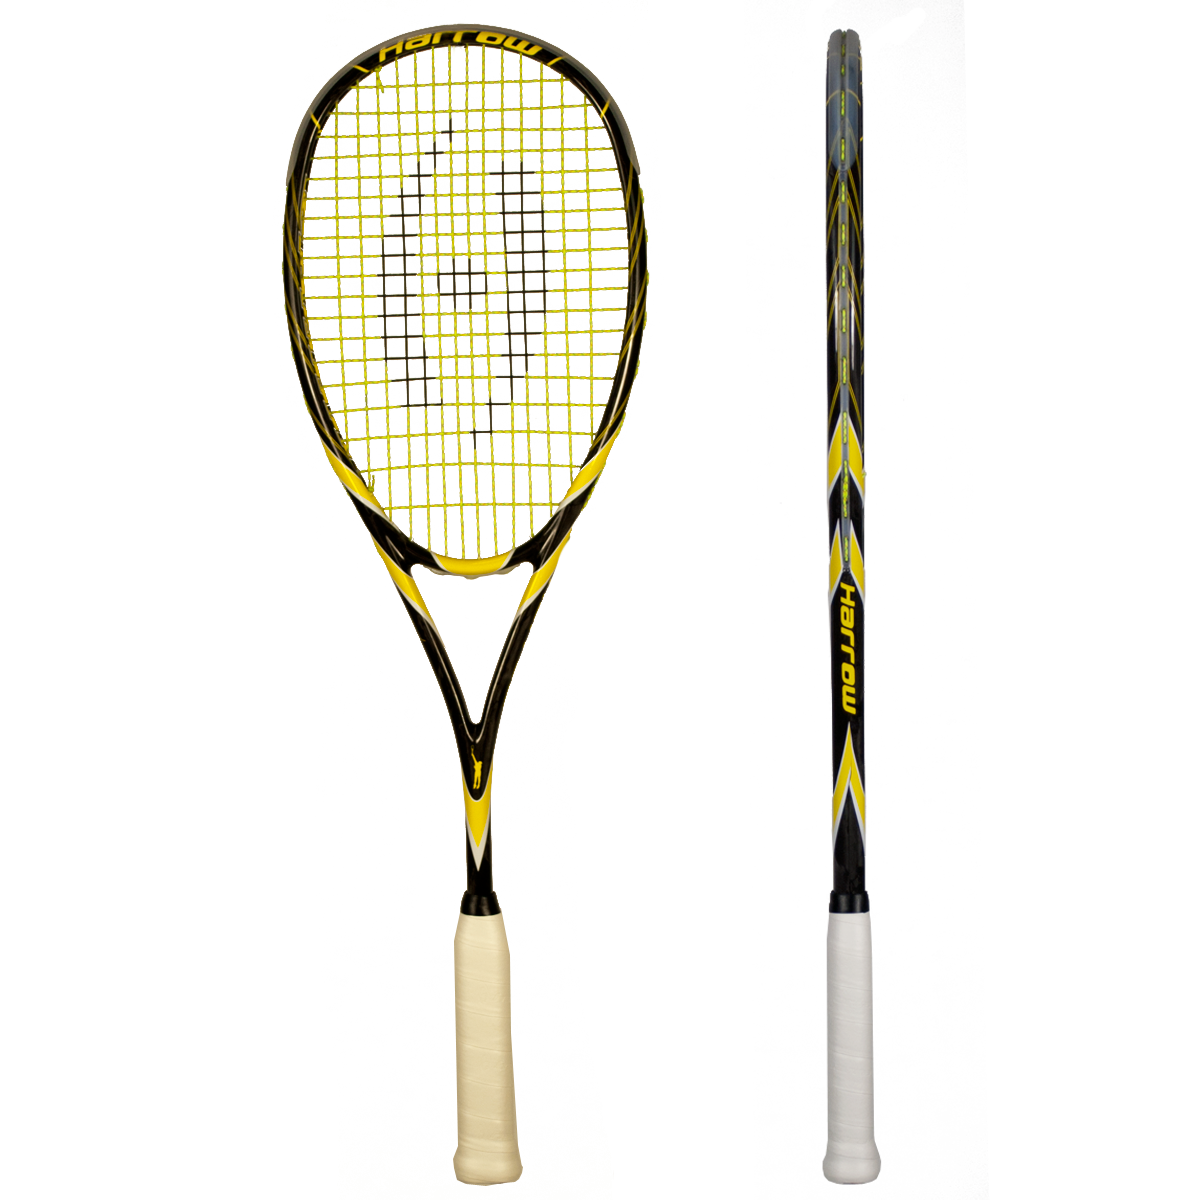 Squash Racquet - Harrow - The Spark, $219 -  One of the lightest high performance racquets in the game at 135 grams finished weight. The power and touch generated by this frame is second to none. Strung with Barrage Pro at 28lbs- Weight 135 g- Balance 375 mm Even- Construction: Carbon Graphite